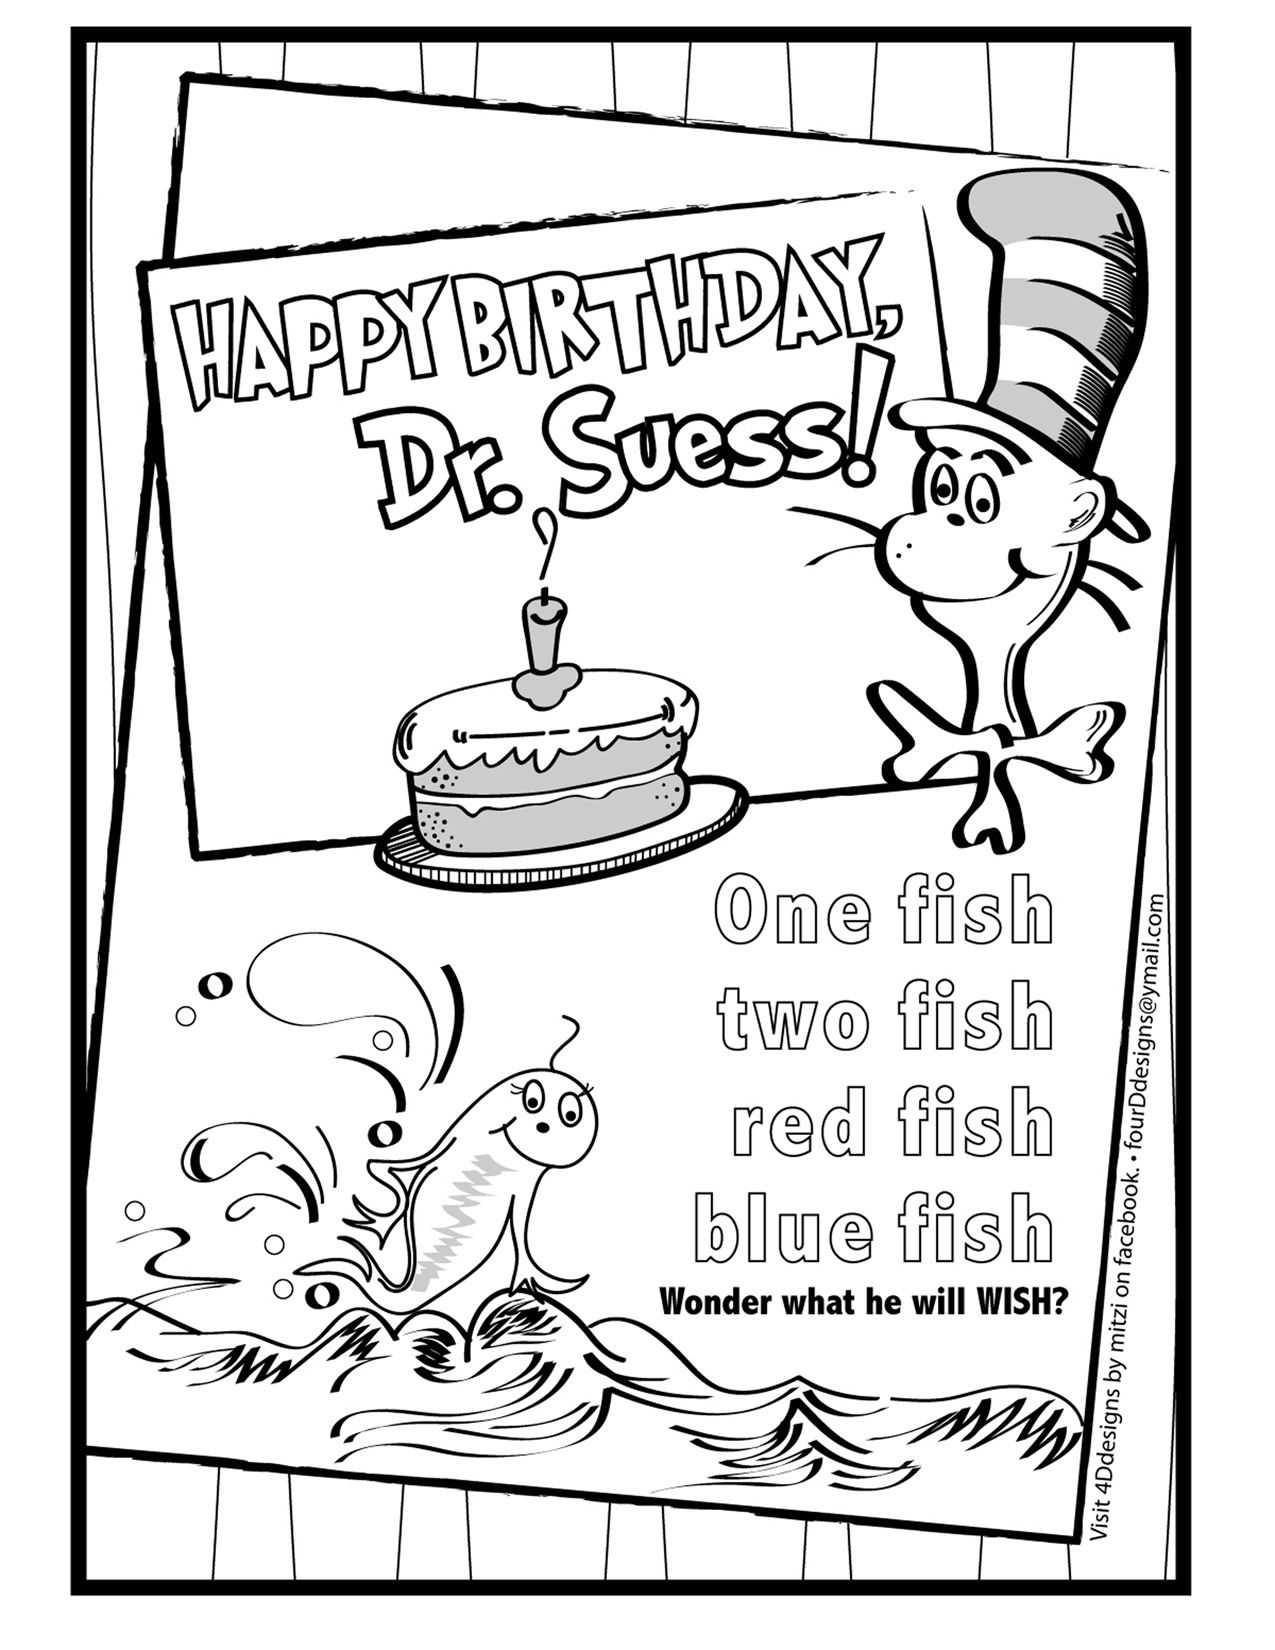 Happy Birthday Dr Suess Coloring Page Free Download